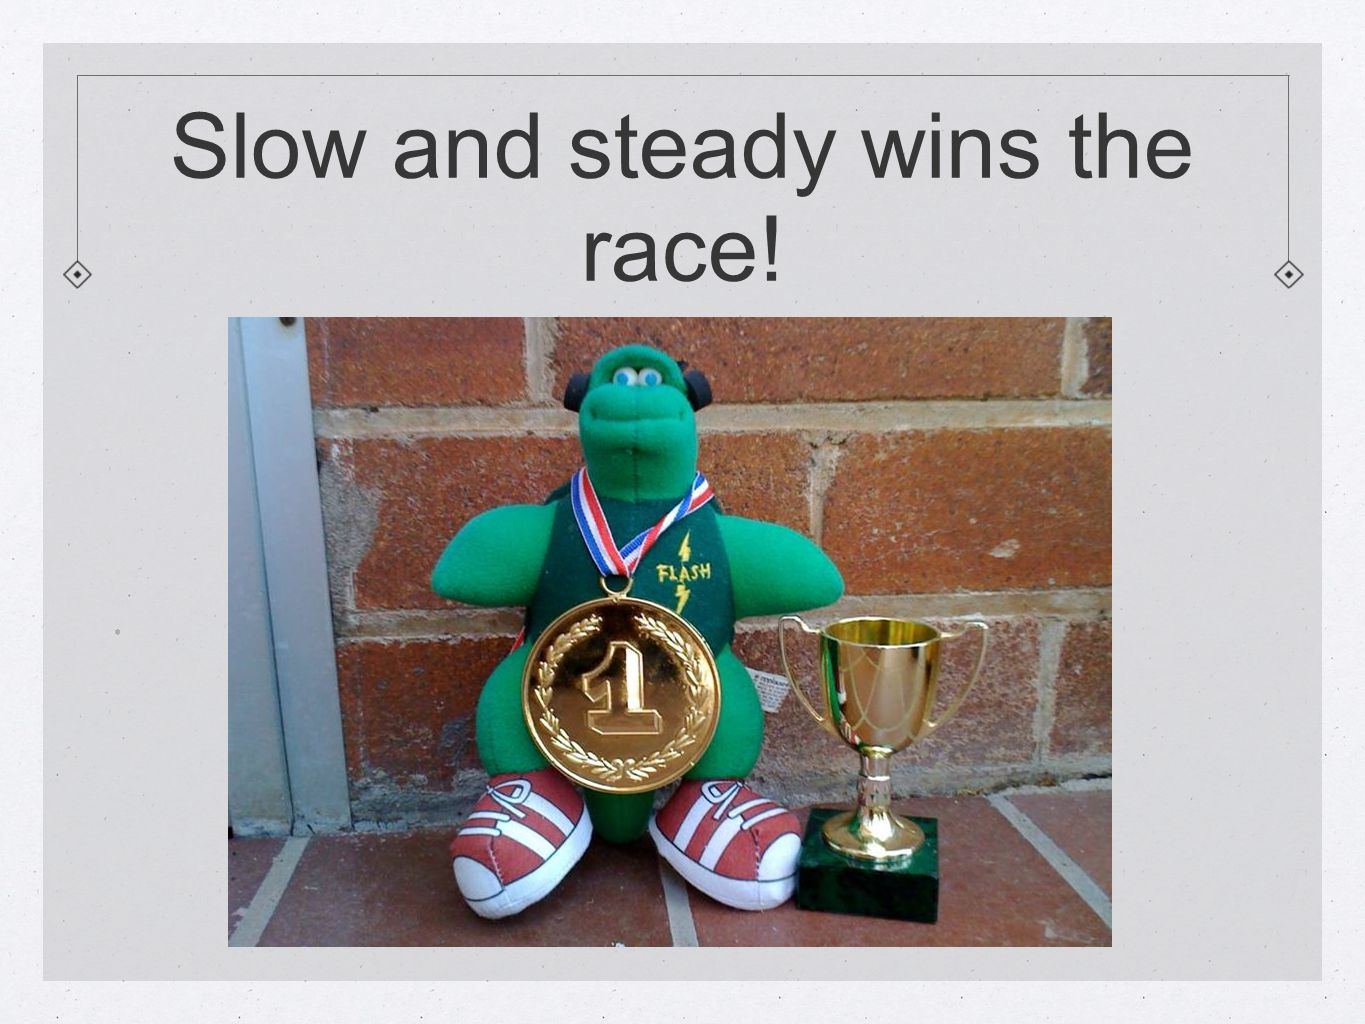 Slow and steady wins the race!.